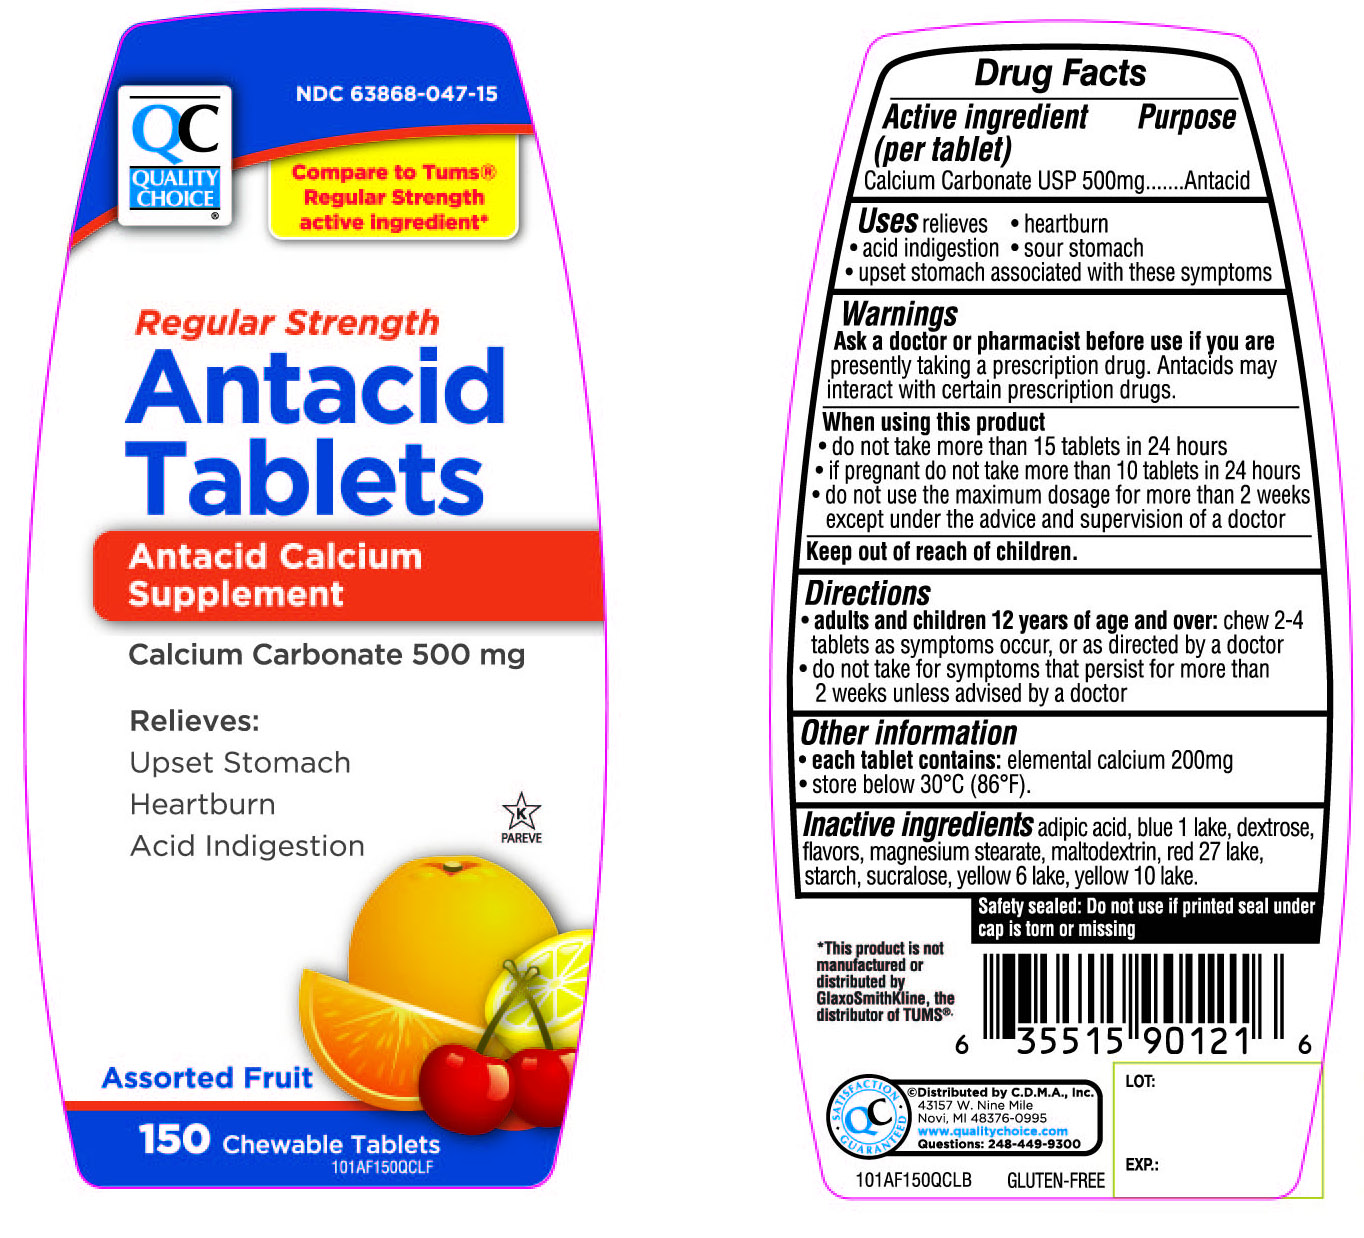 Quality Choice Chewable Antacid Assorted Fruit (Antacid Tablets) Tablet, Chewable [Chain Drug Marketing Association]